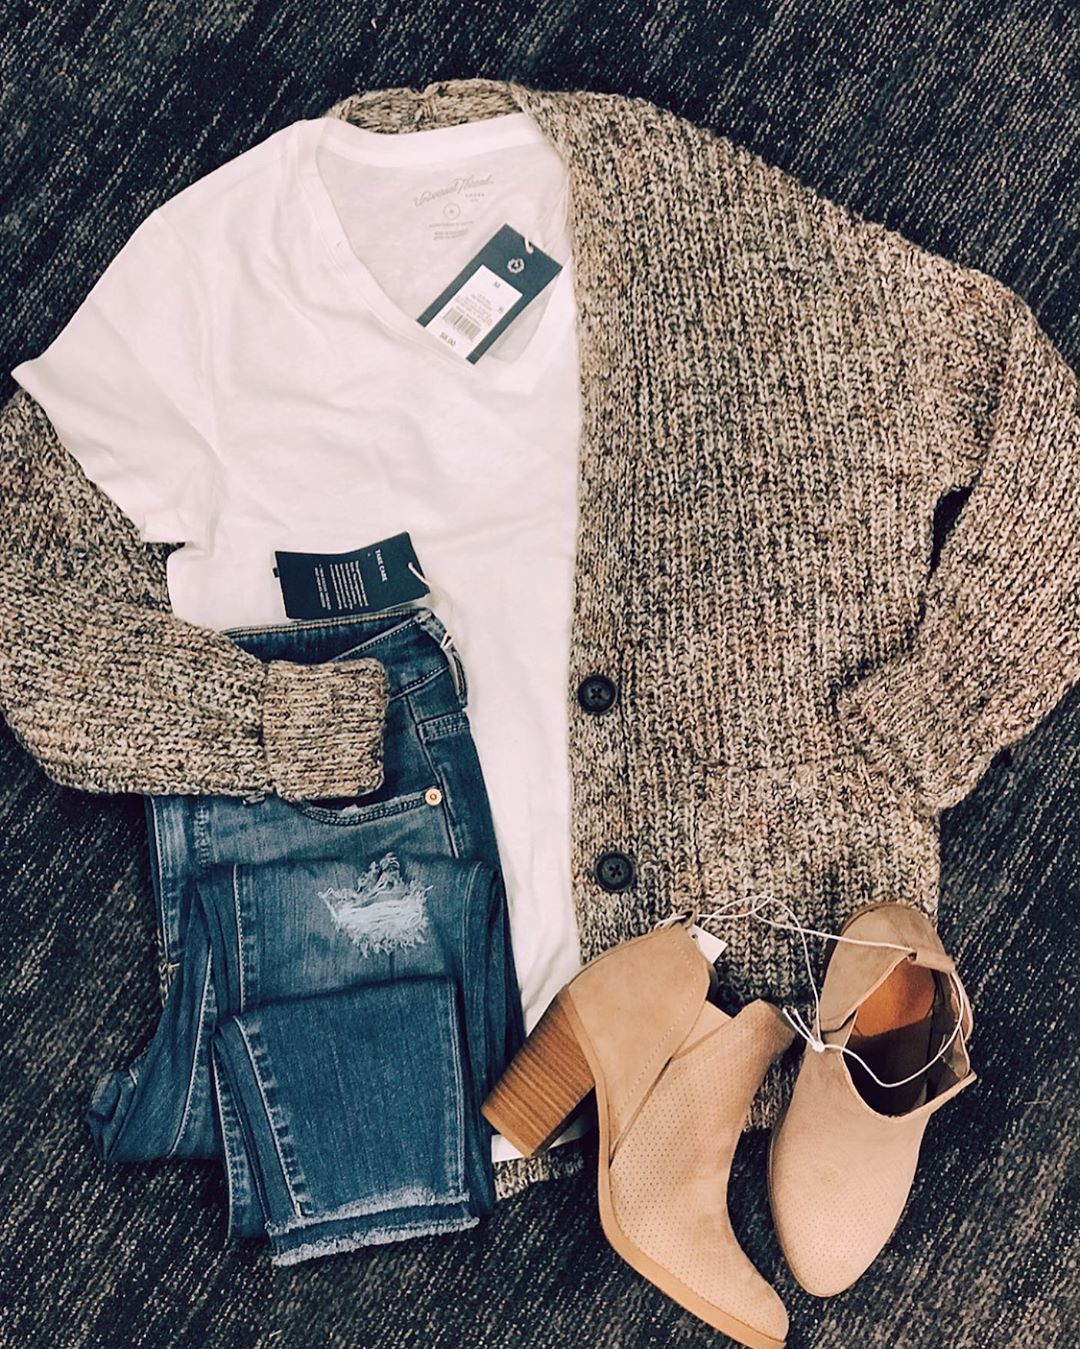 ugg outfit cute winter Image by </p>         </div>          <!--eof Product description -->      <!--bof Reviews button and count-->      <div class=